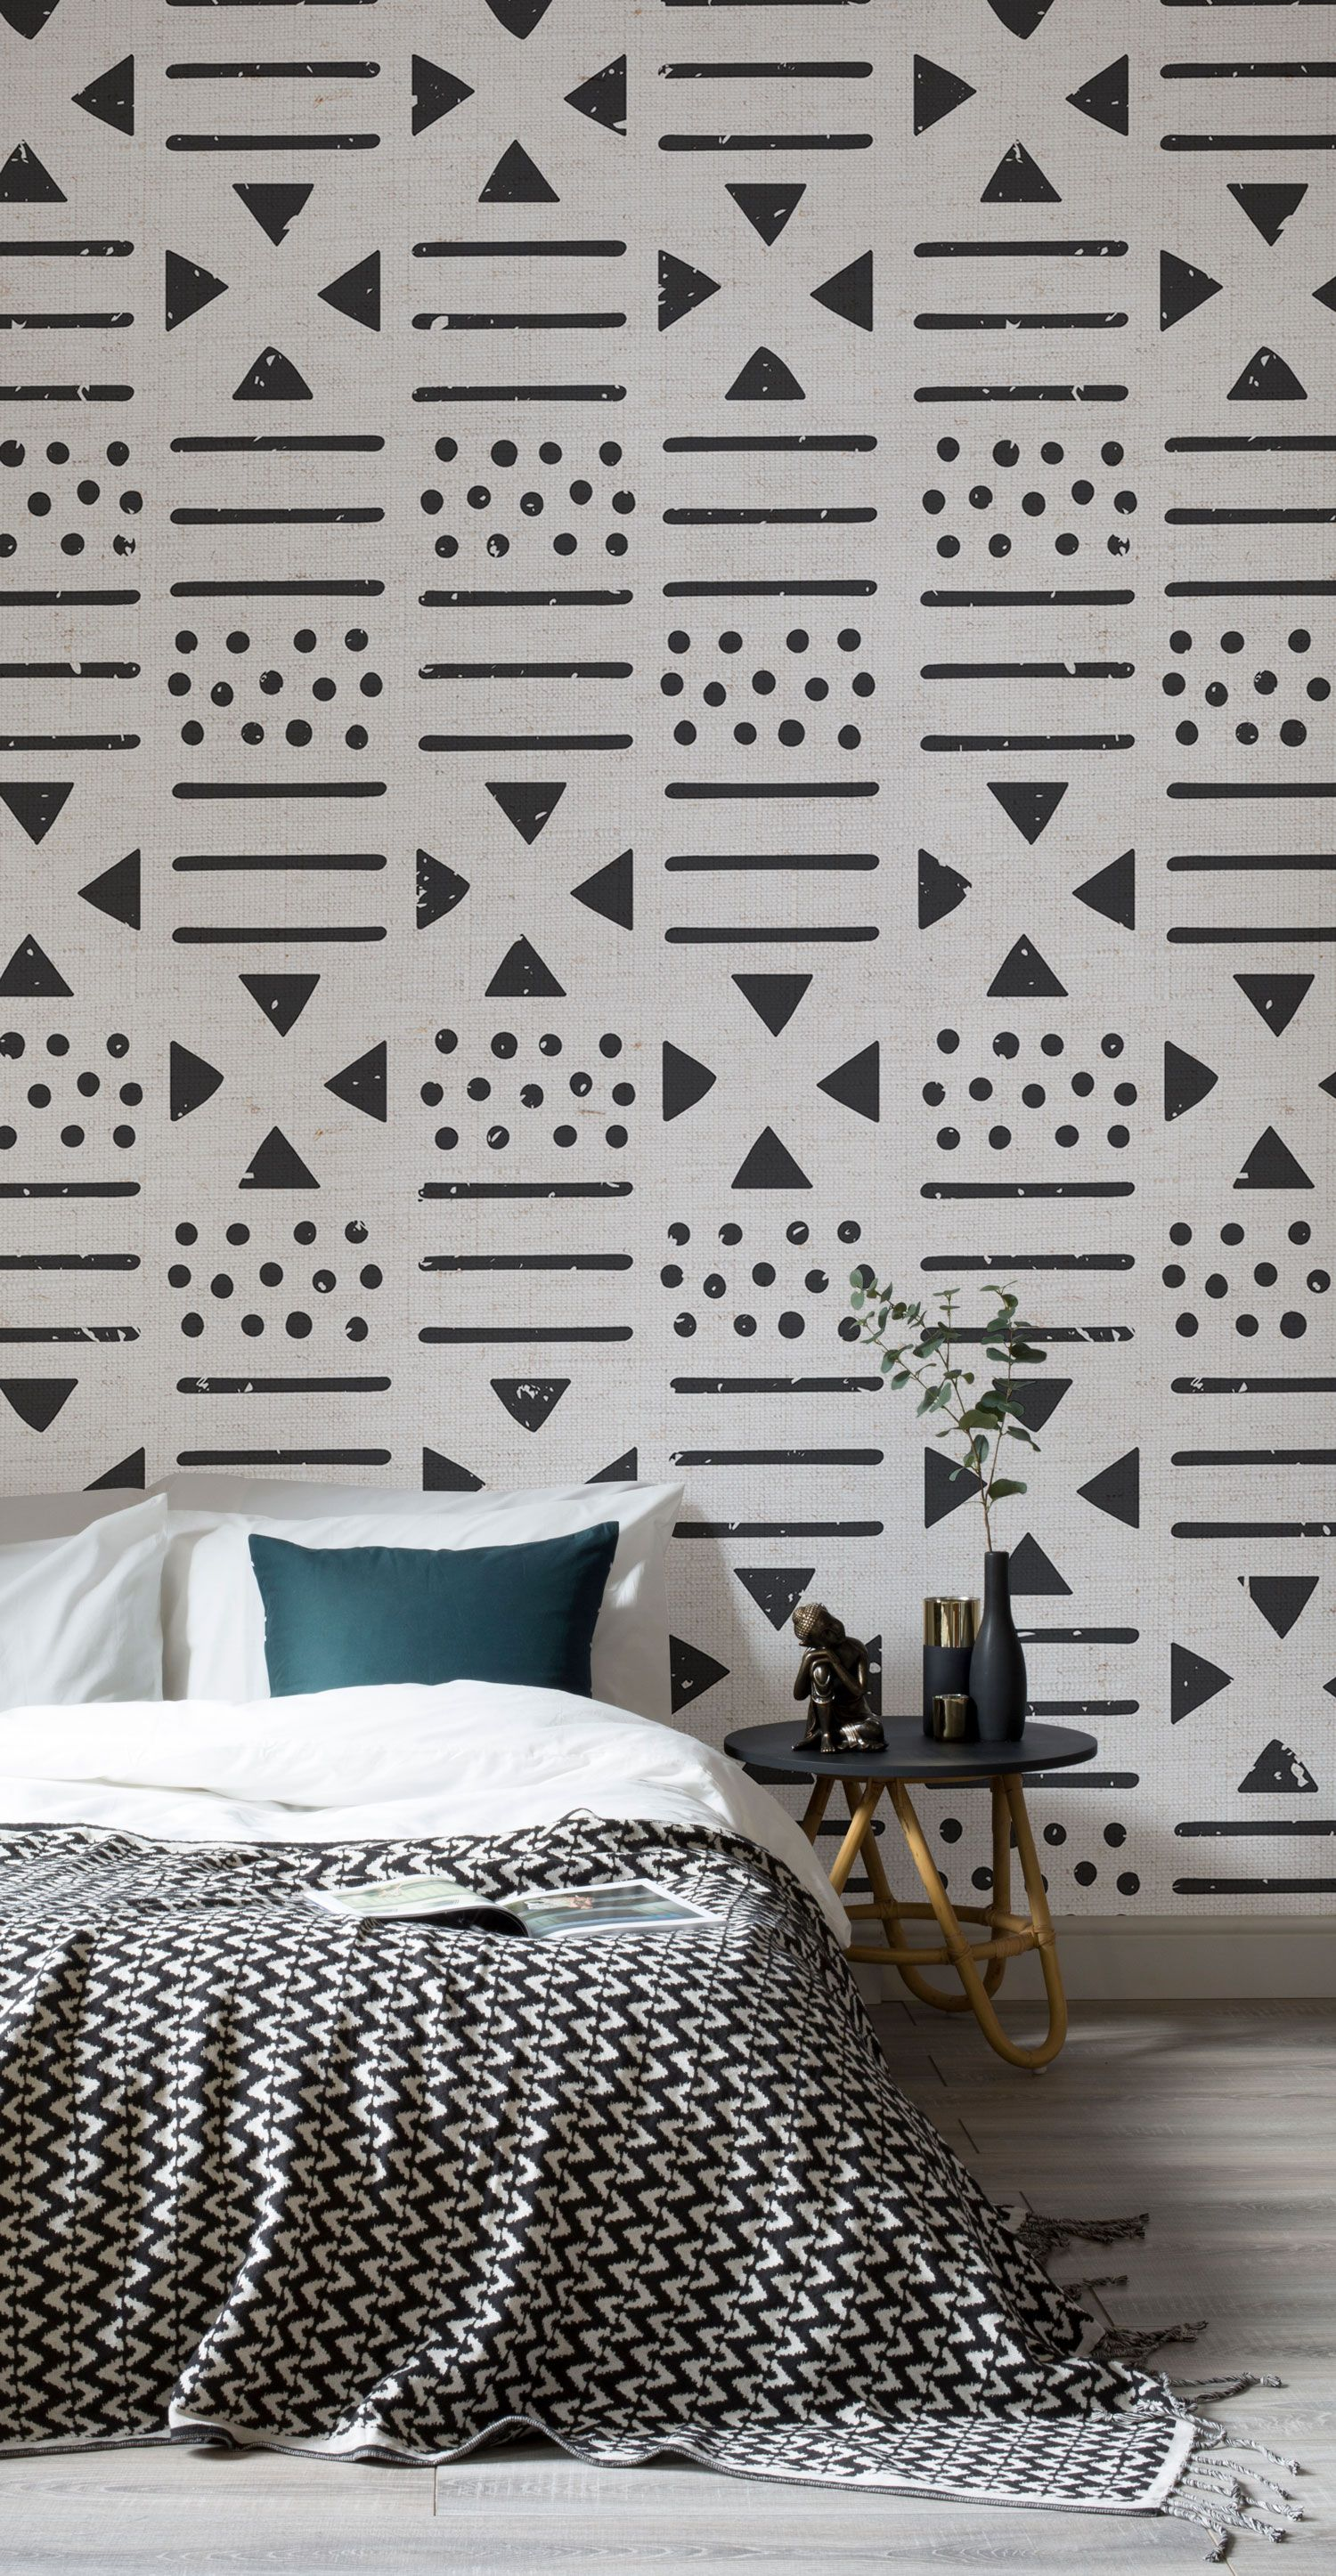 This tribal inspired wallpaper draws inspiration from around the world combining a neutral palette with big bold motifs that help your bedroom spaces